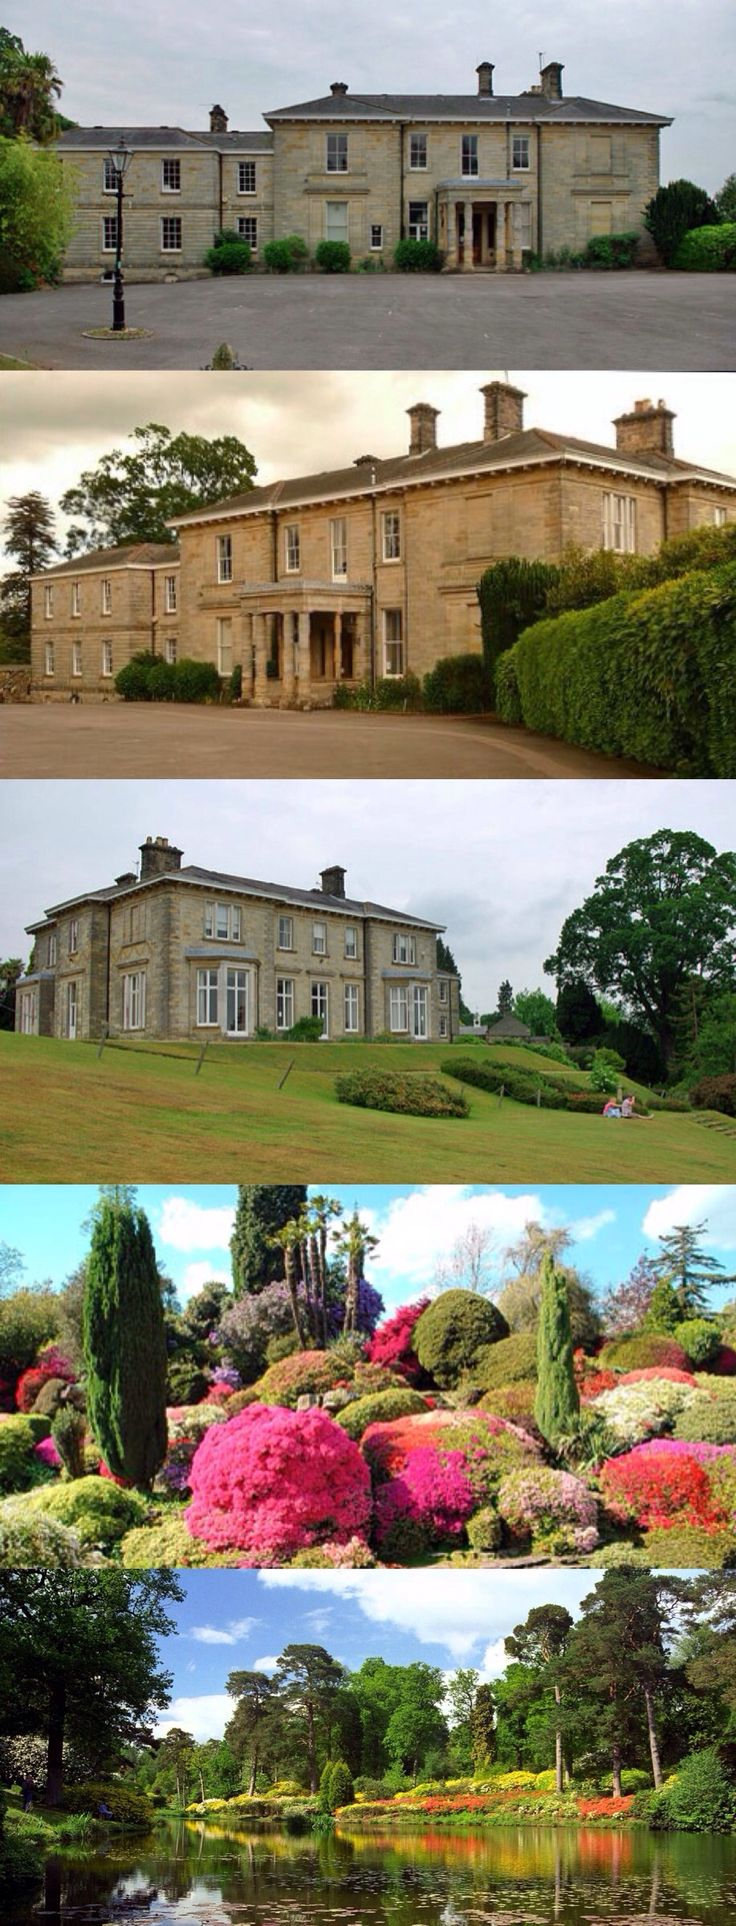 Leonardslee, nr Horsham, Sussex. By T.L. Donaldson, 1853, for W.E. Hubbard. Italianate with 2-storey central hall. Unpretentious, but displays a 'modest sumptuousness' (Goodhart-Rendel). In 1889 Edmund Loder bought the property and began developing the garden. The house was sold for offices but the Loder family retained the 225acre garden, opening it to the public until 2010, when it and the house were sold to a private owner.